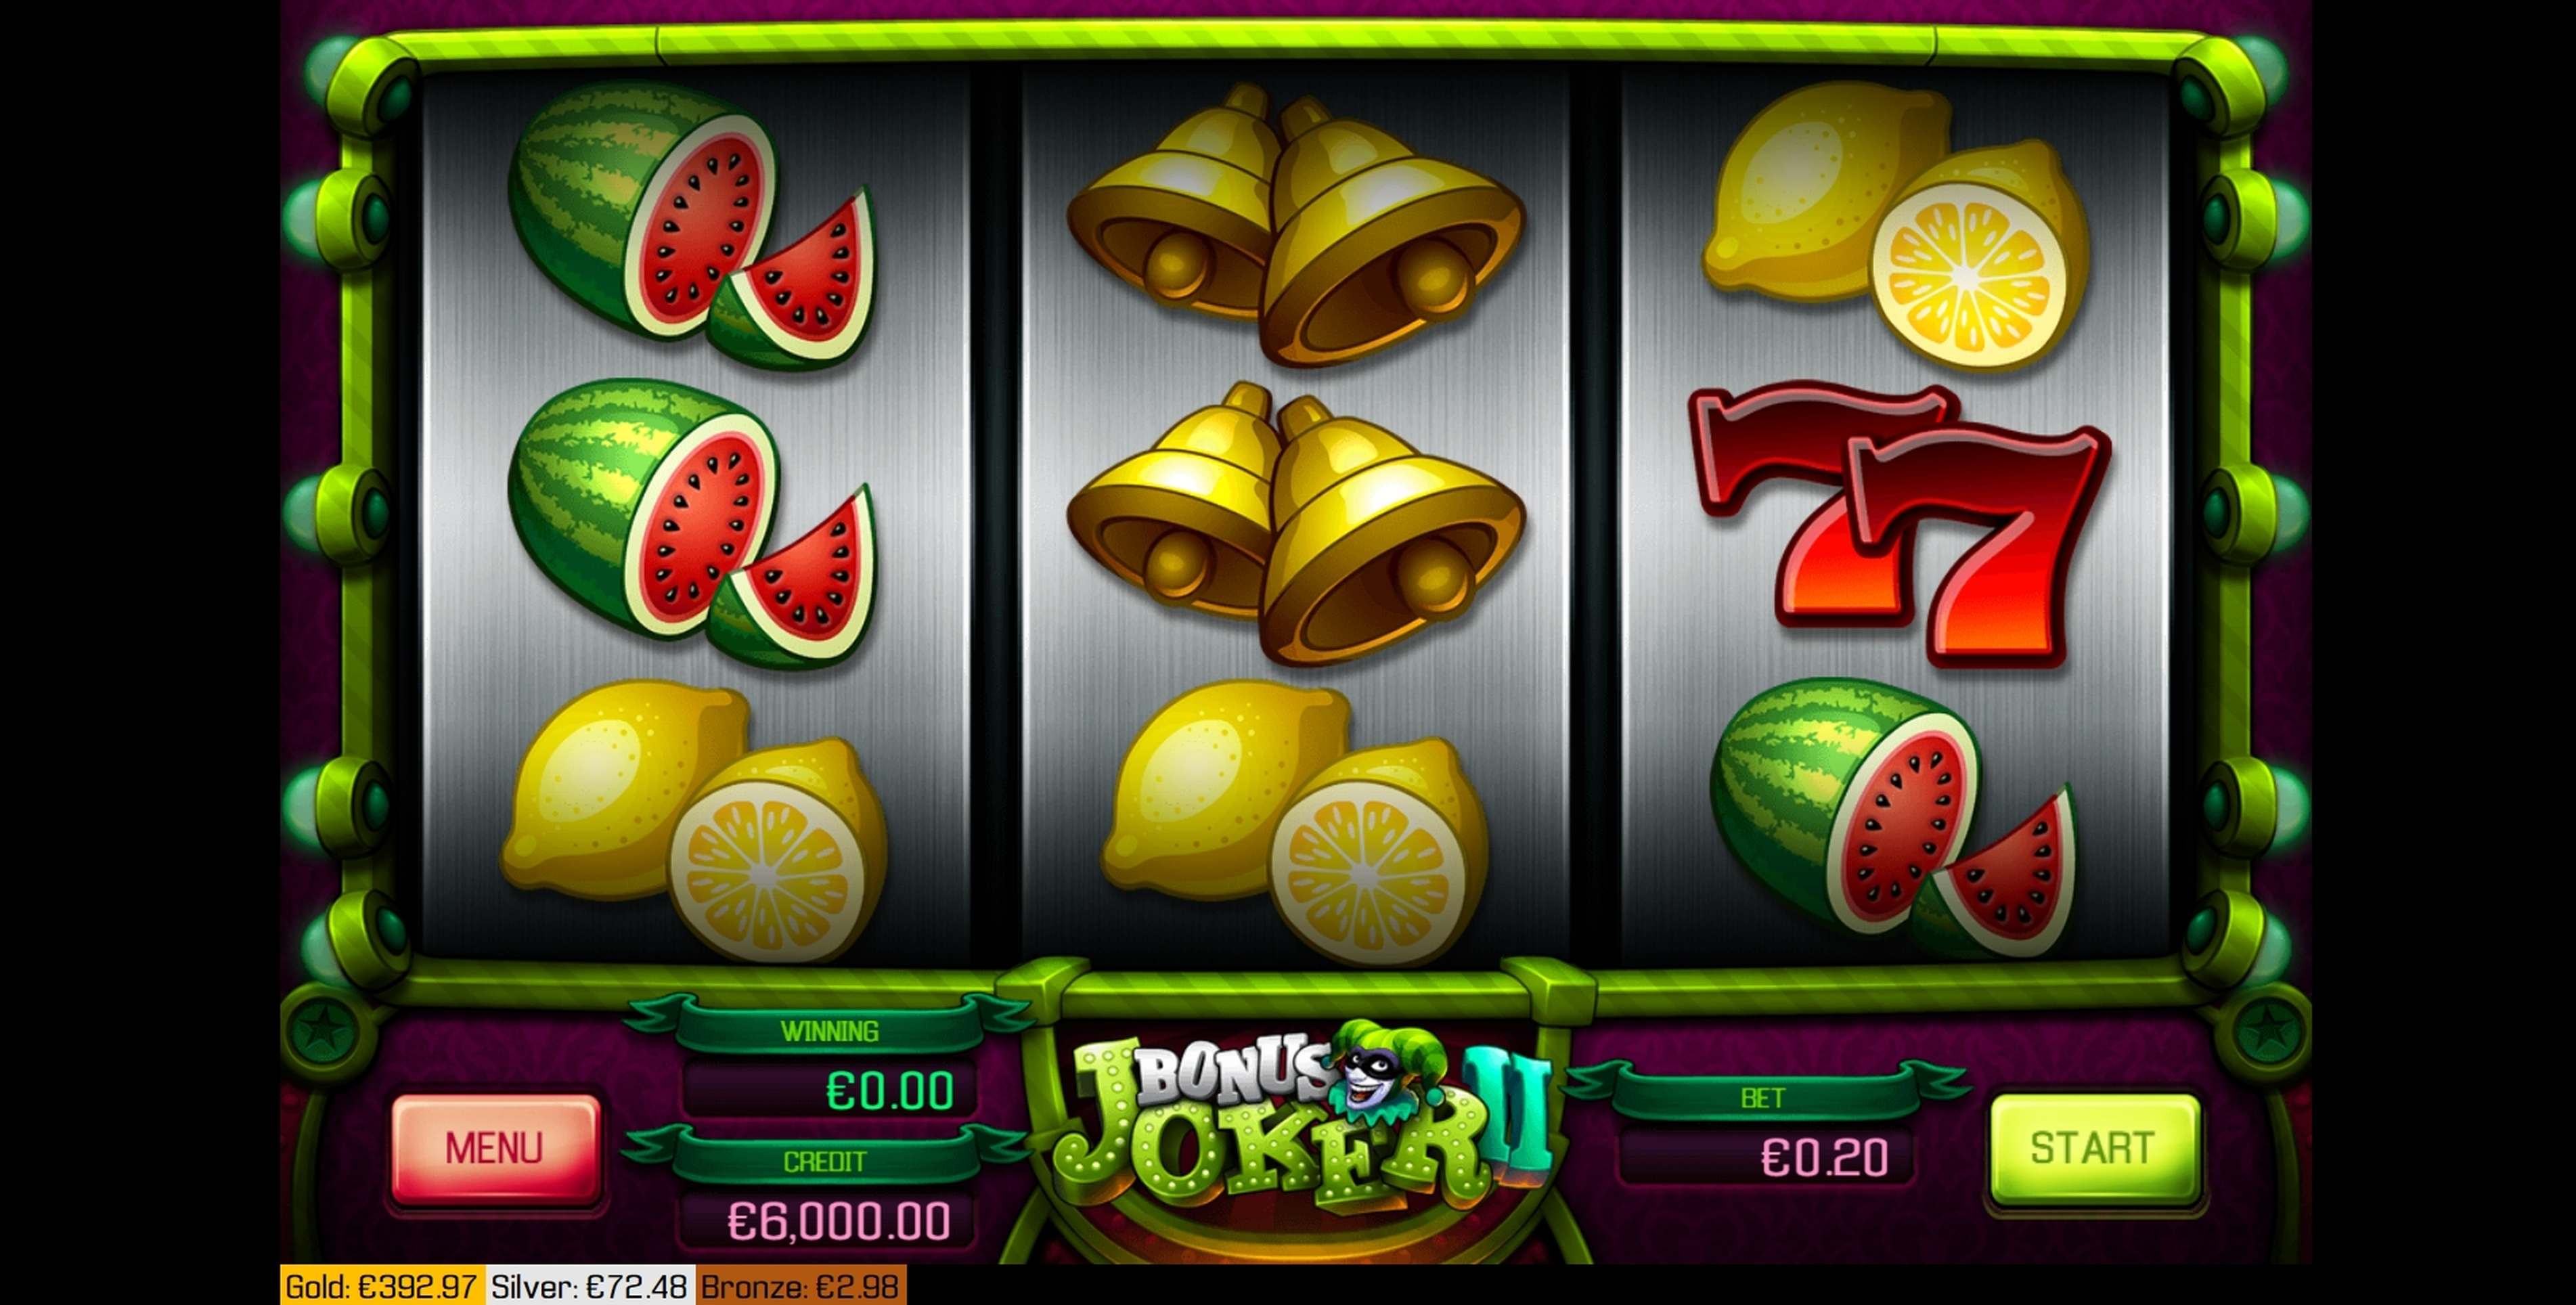 Why players should pay attention when playing casino games